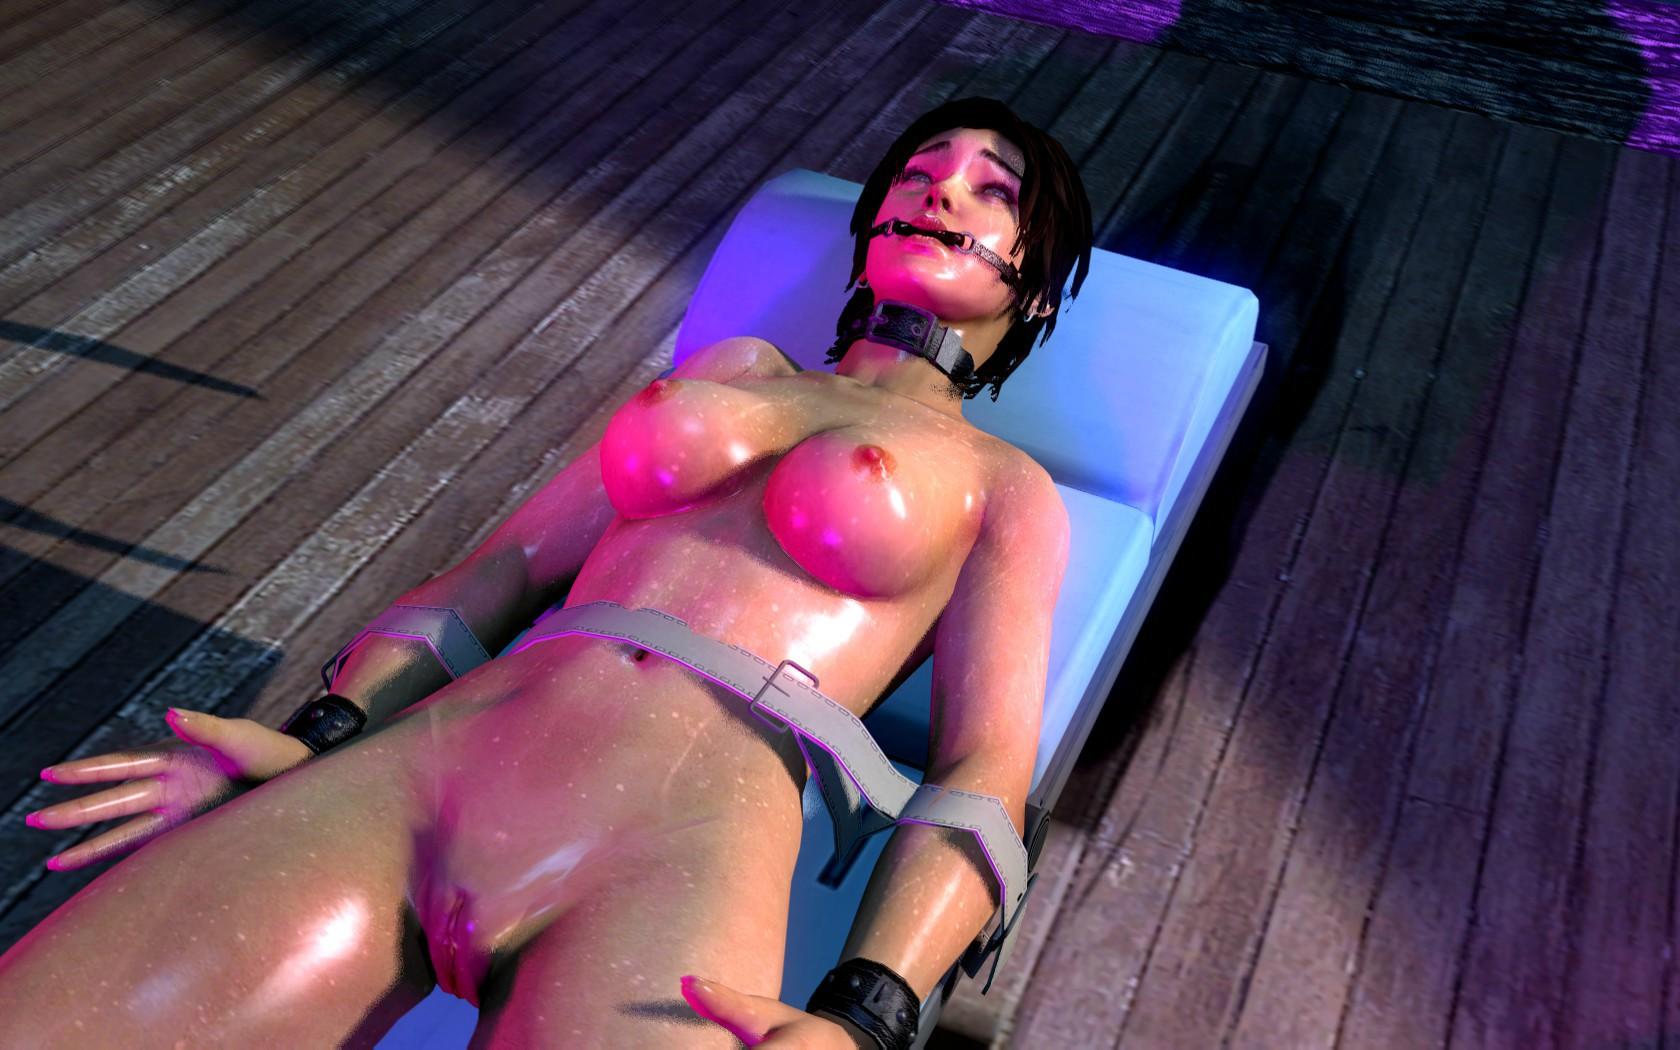 Tomb raider xxx 3d having sex porn clips